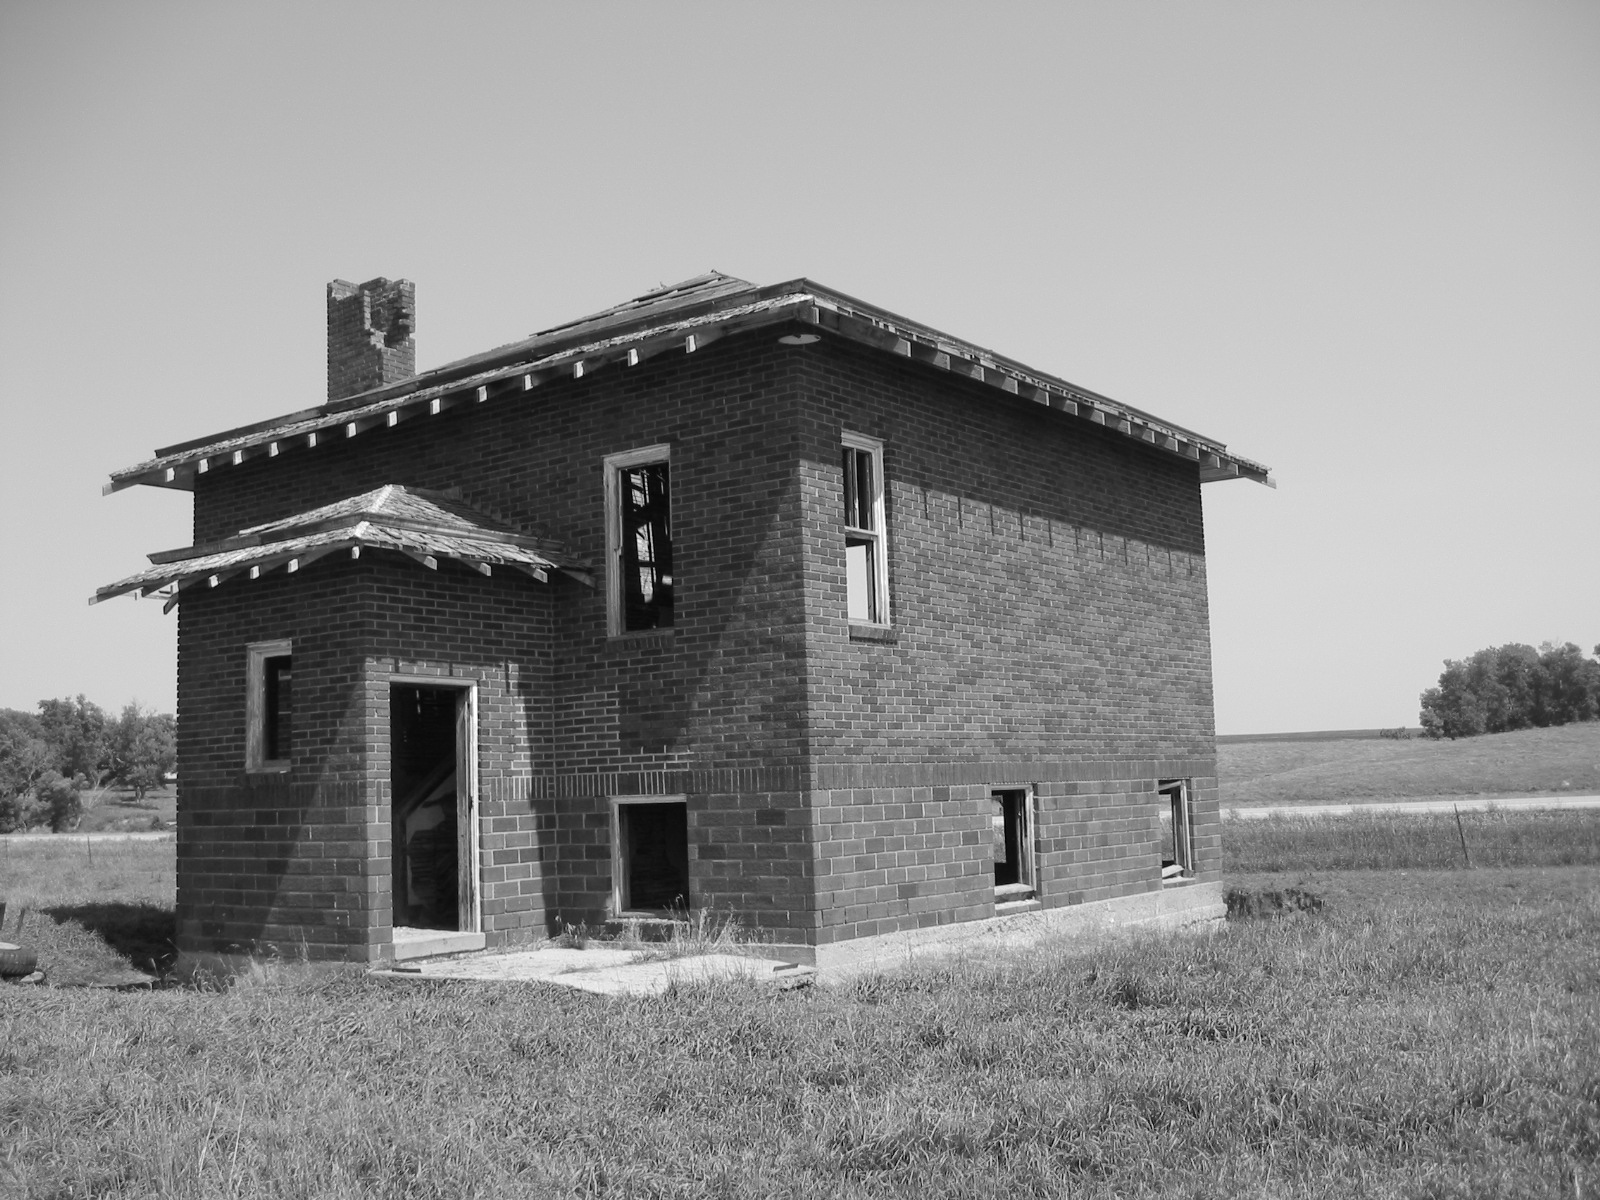 Abandoned house, Abandoned, Blackandwhite, Building, Construction, HQ Photo